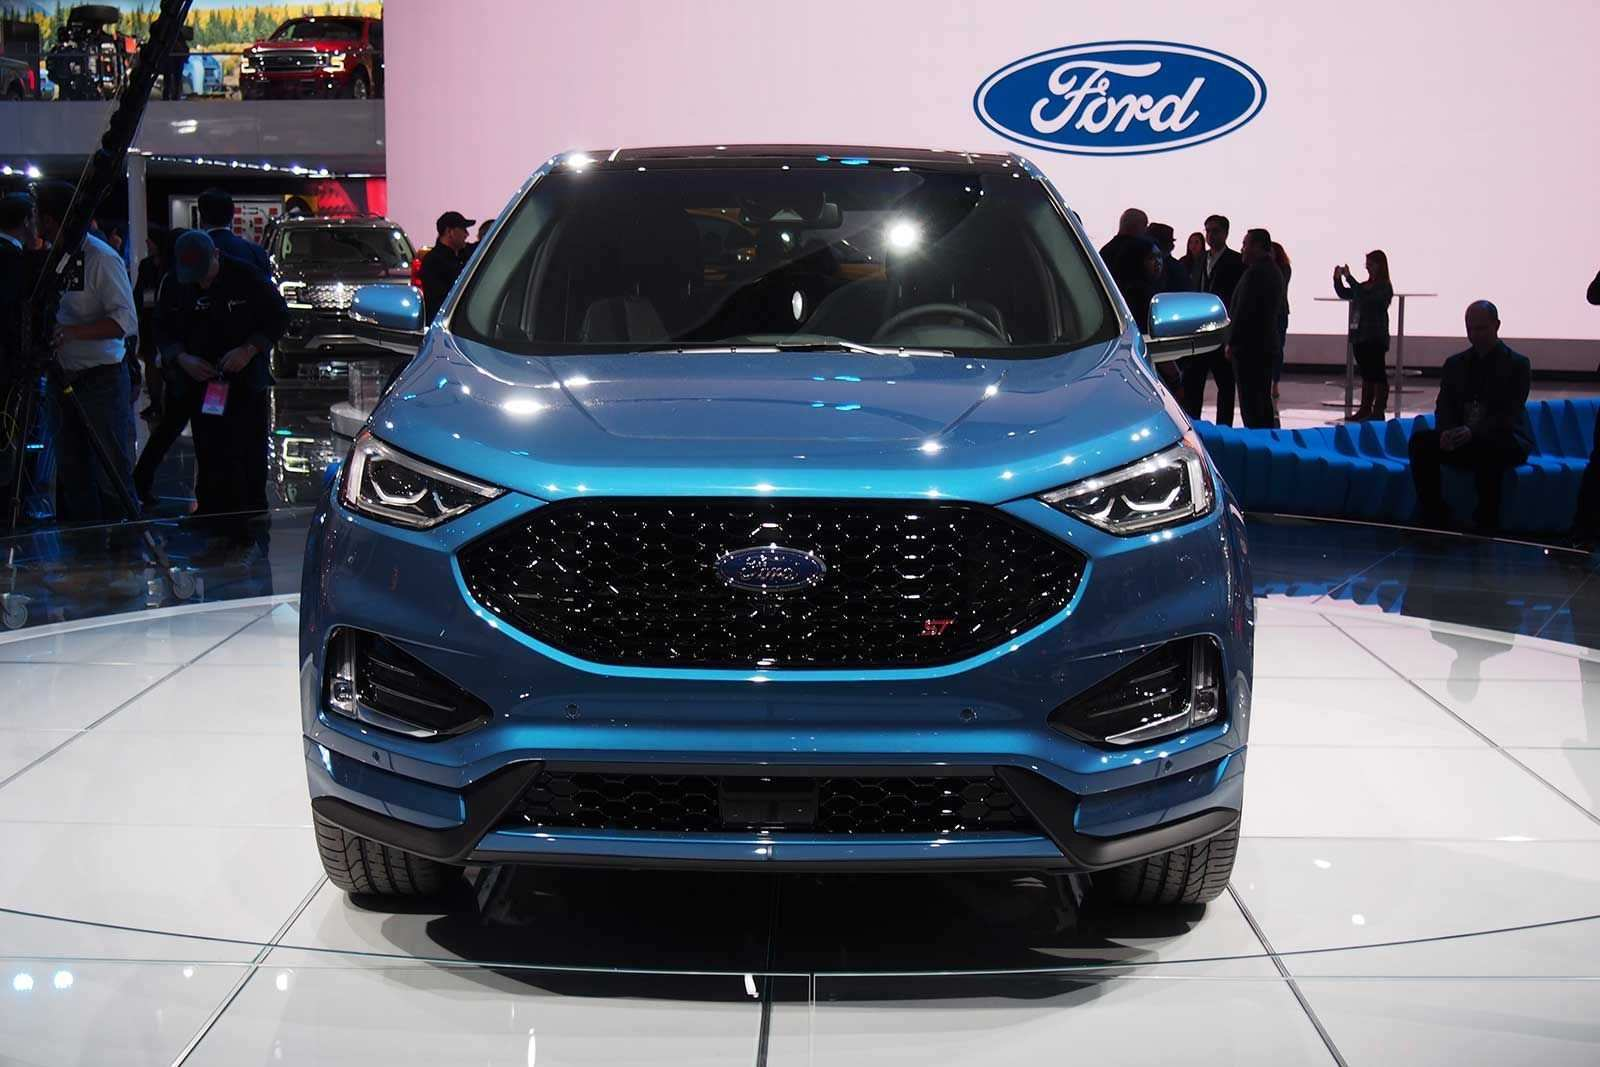 86 Great Best Ford 2019 Lineup Release Date Performance Price and Review for Best Ford 2019 Lineup Release Date Performance